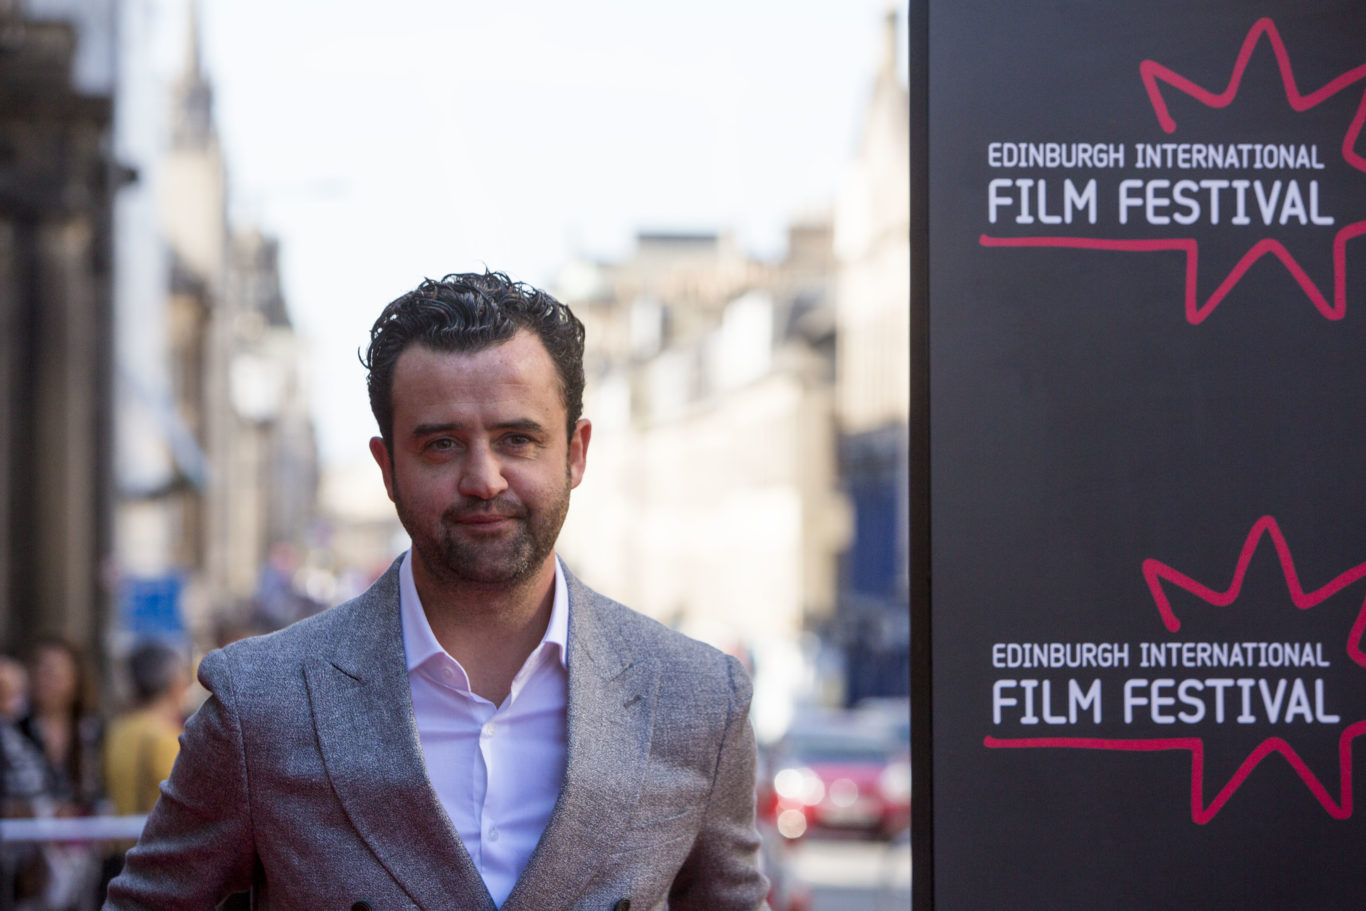 Daniel Mays welcomed the chance to do a comedy role (EIFF/PA)